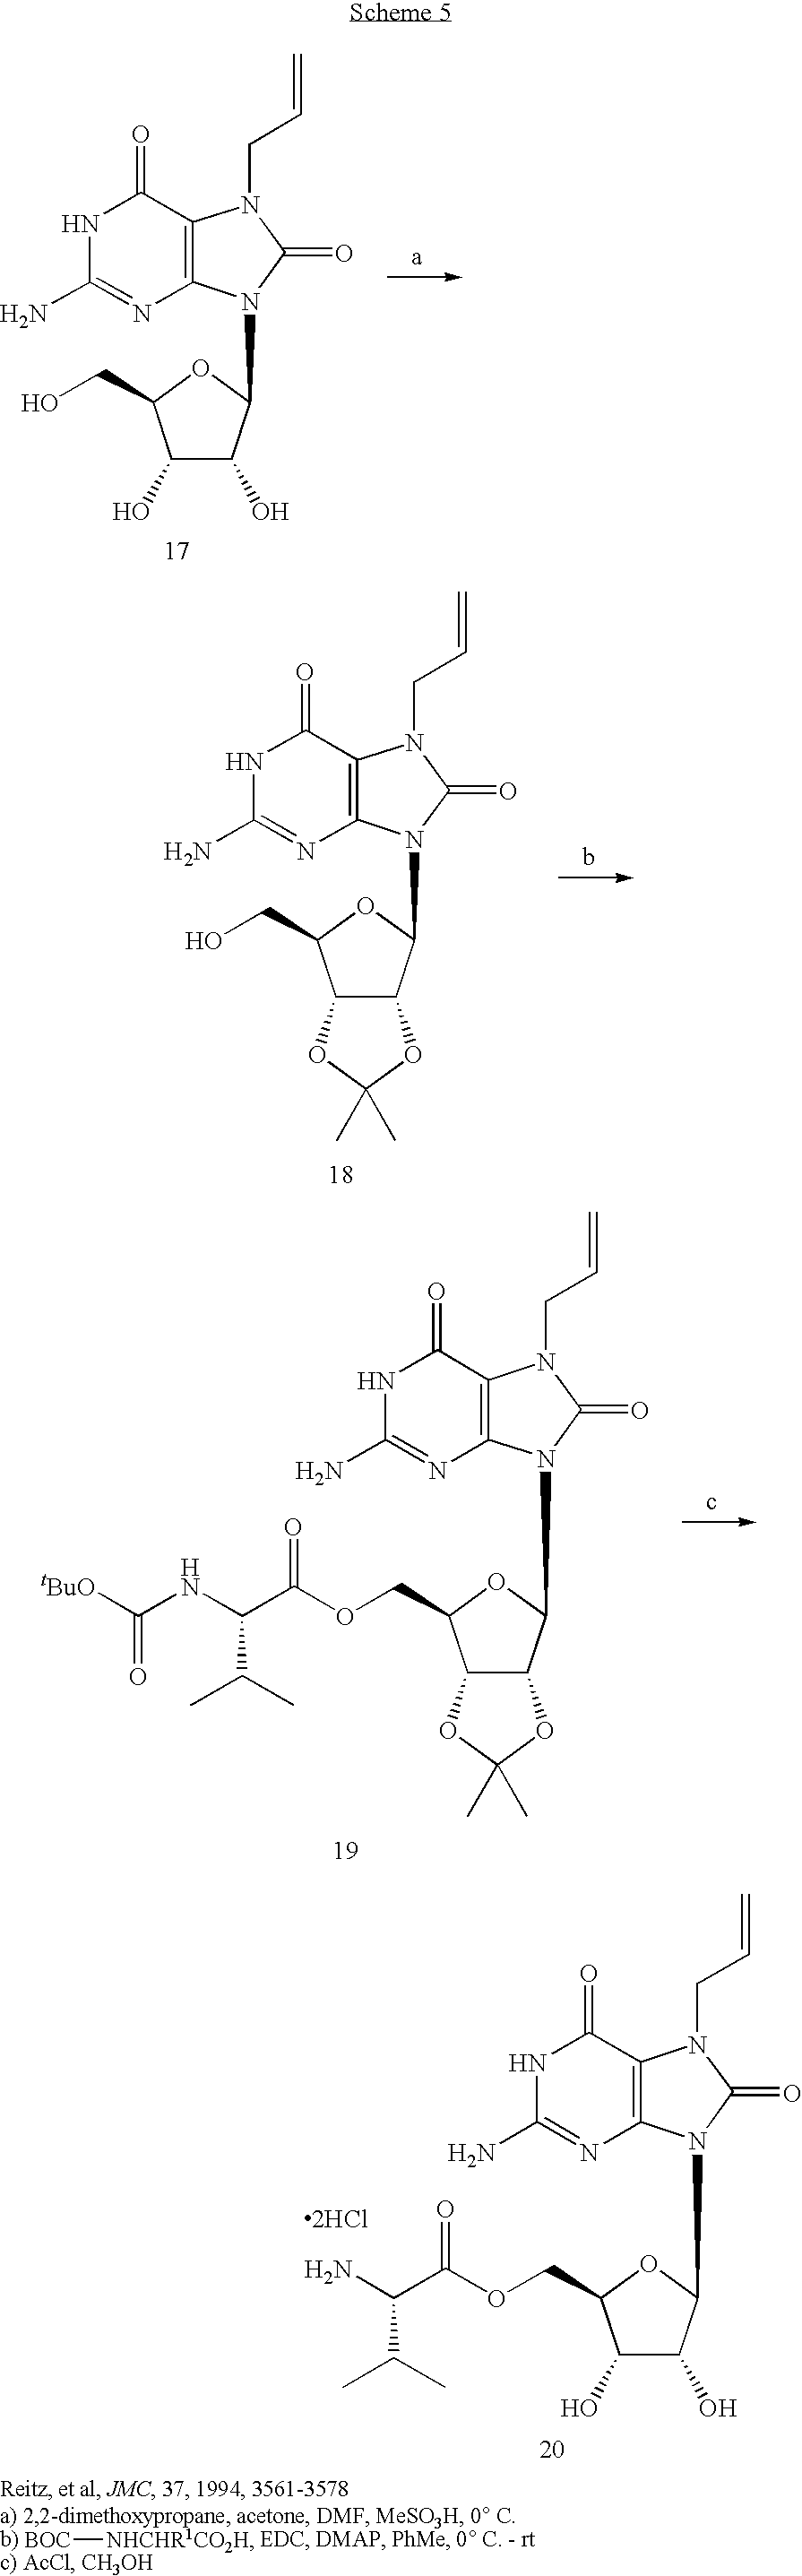 us20090298863a1 administration of tlr7 ligands and prodrugs  figure us20090298863a1 20091203 c00018